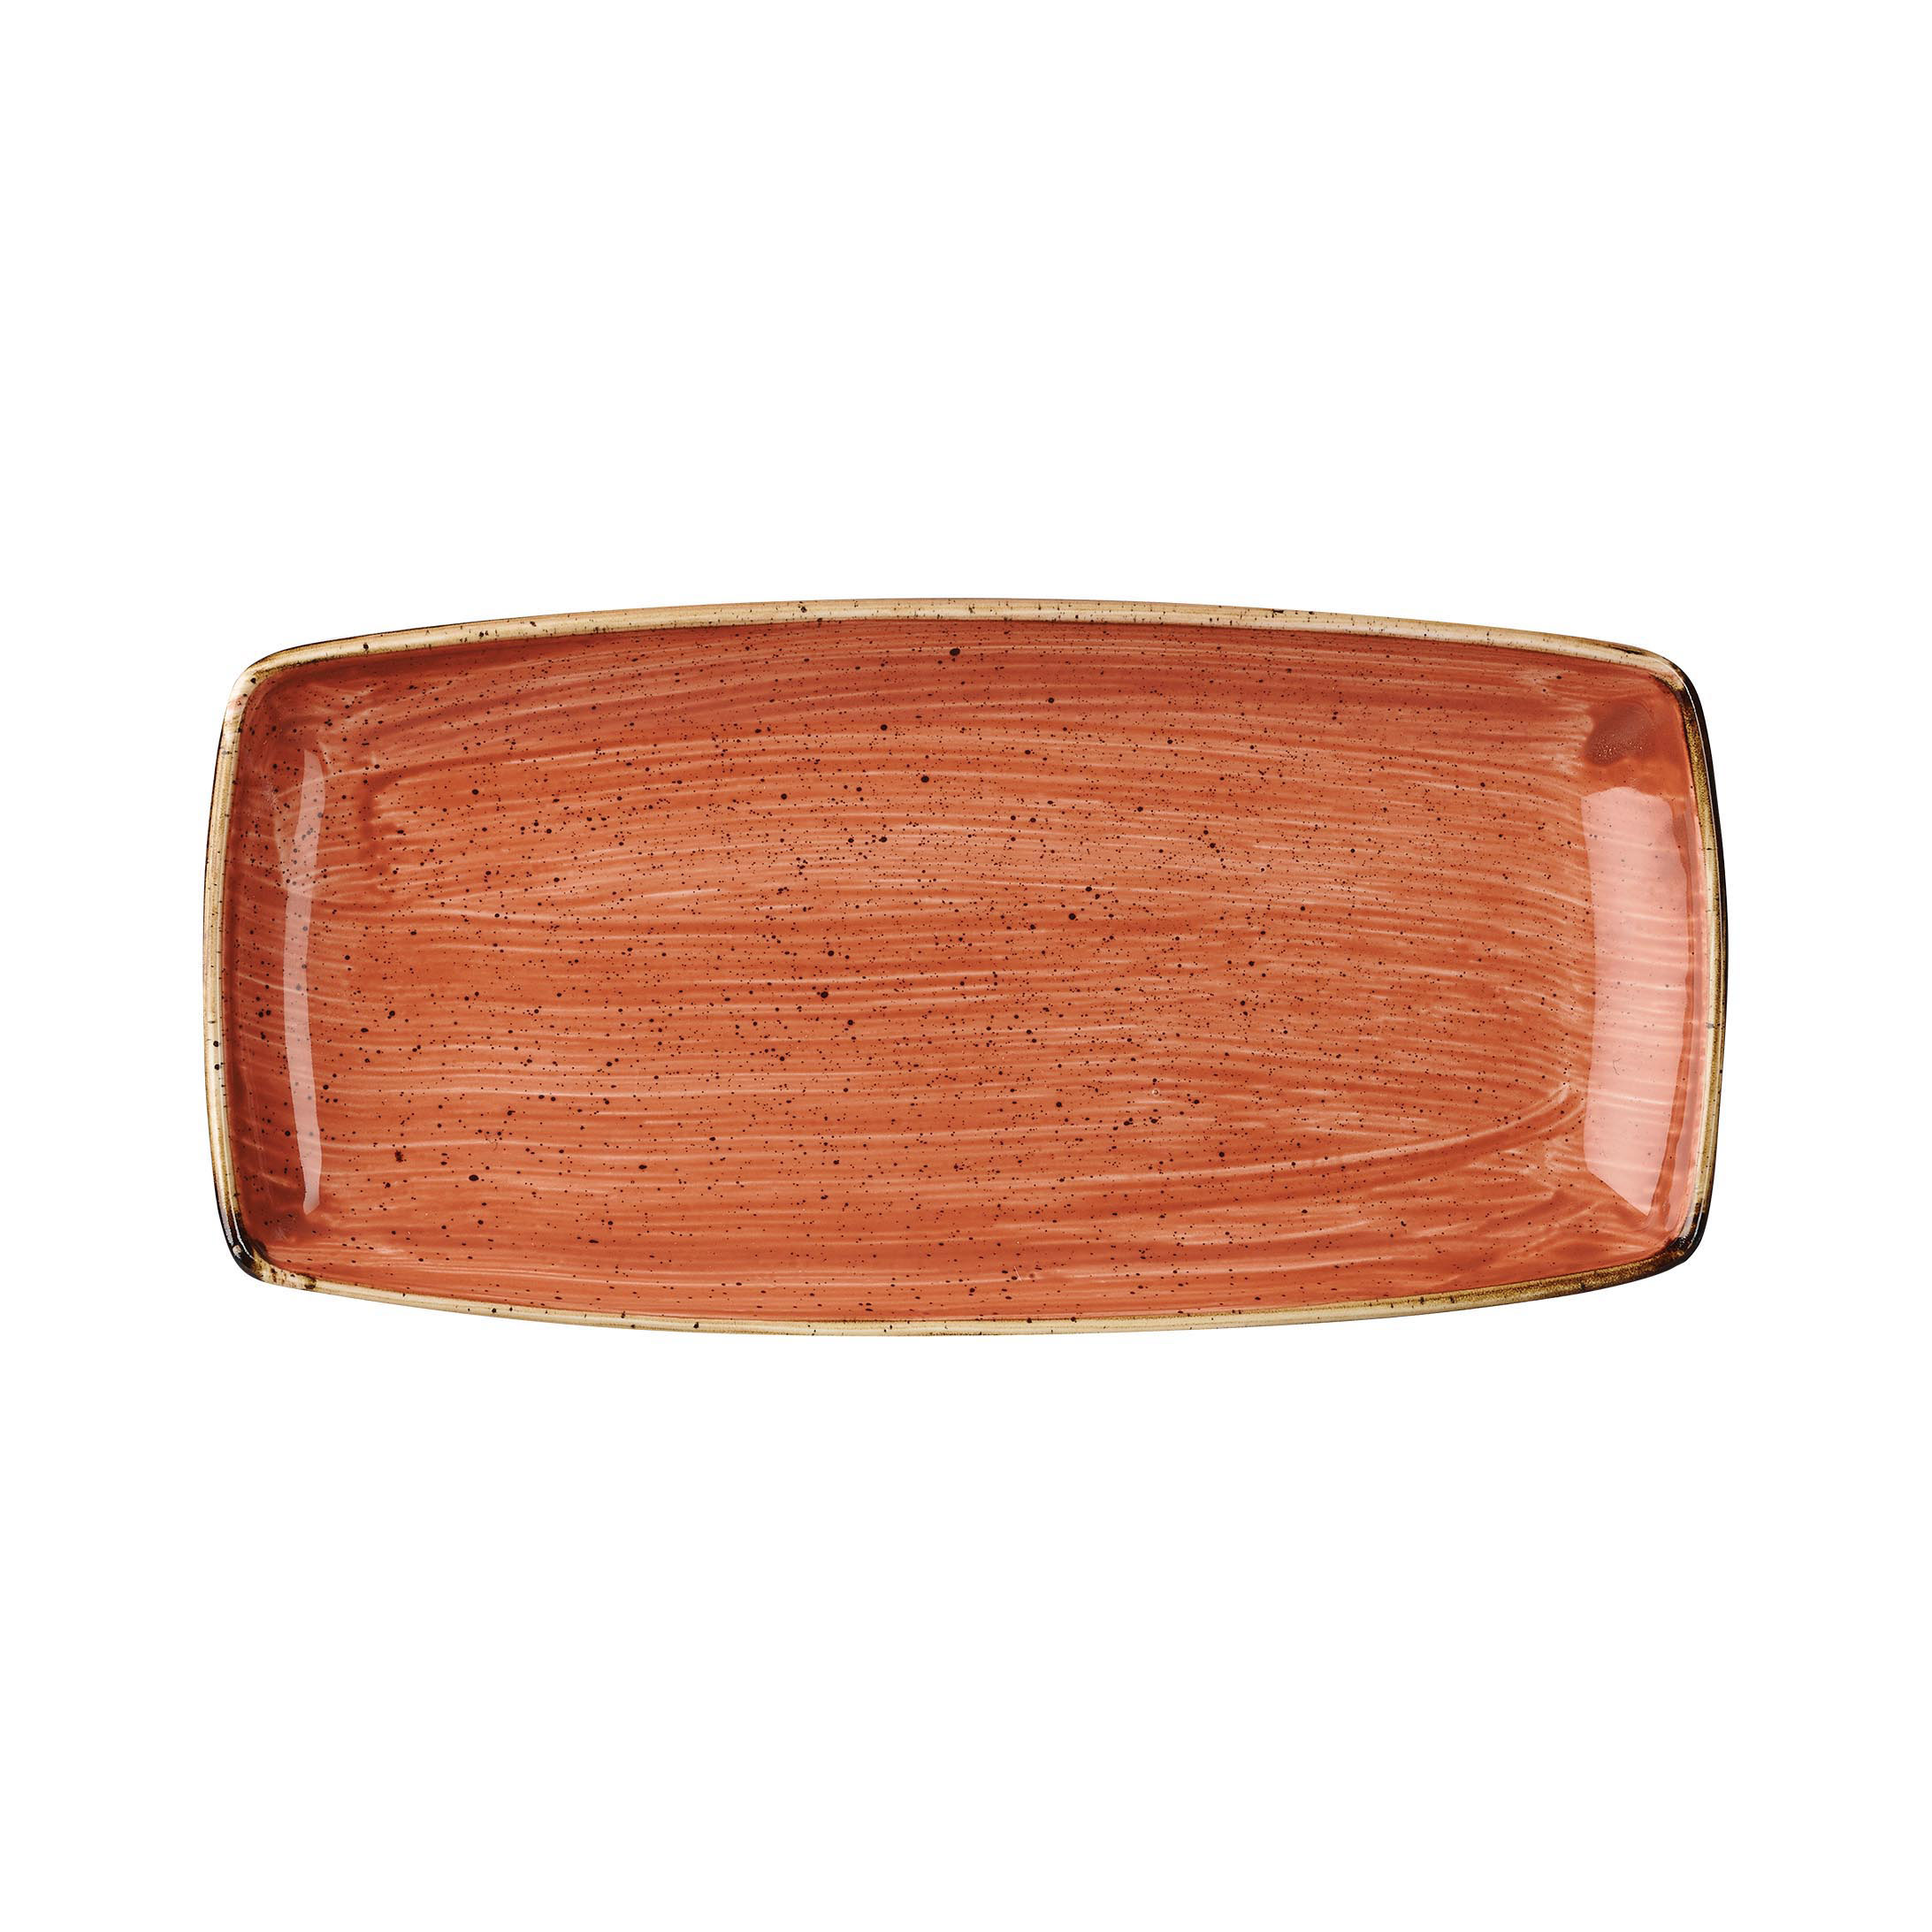 SPICED ORANGE - OBLONG PLATE - 29.5 x 15cm (12)